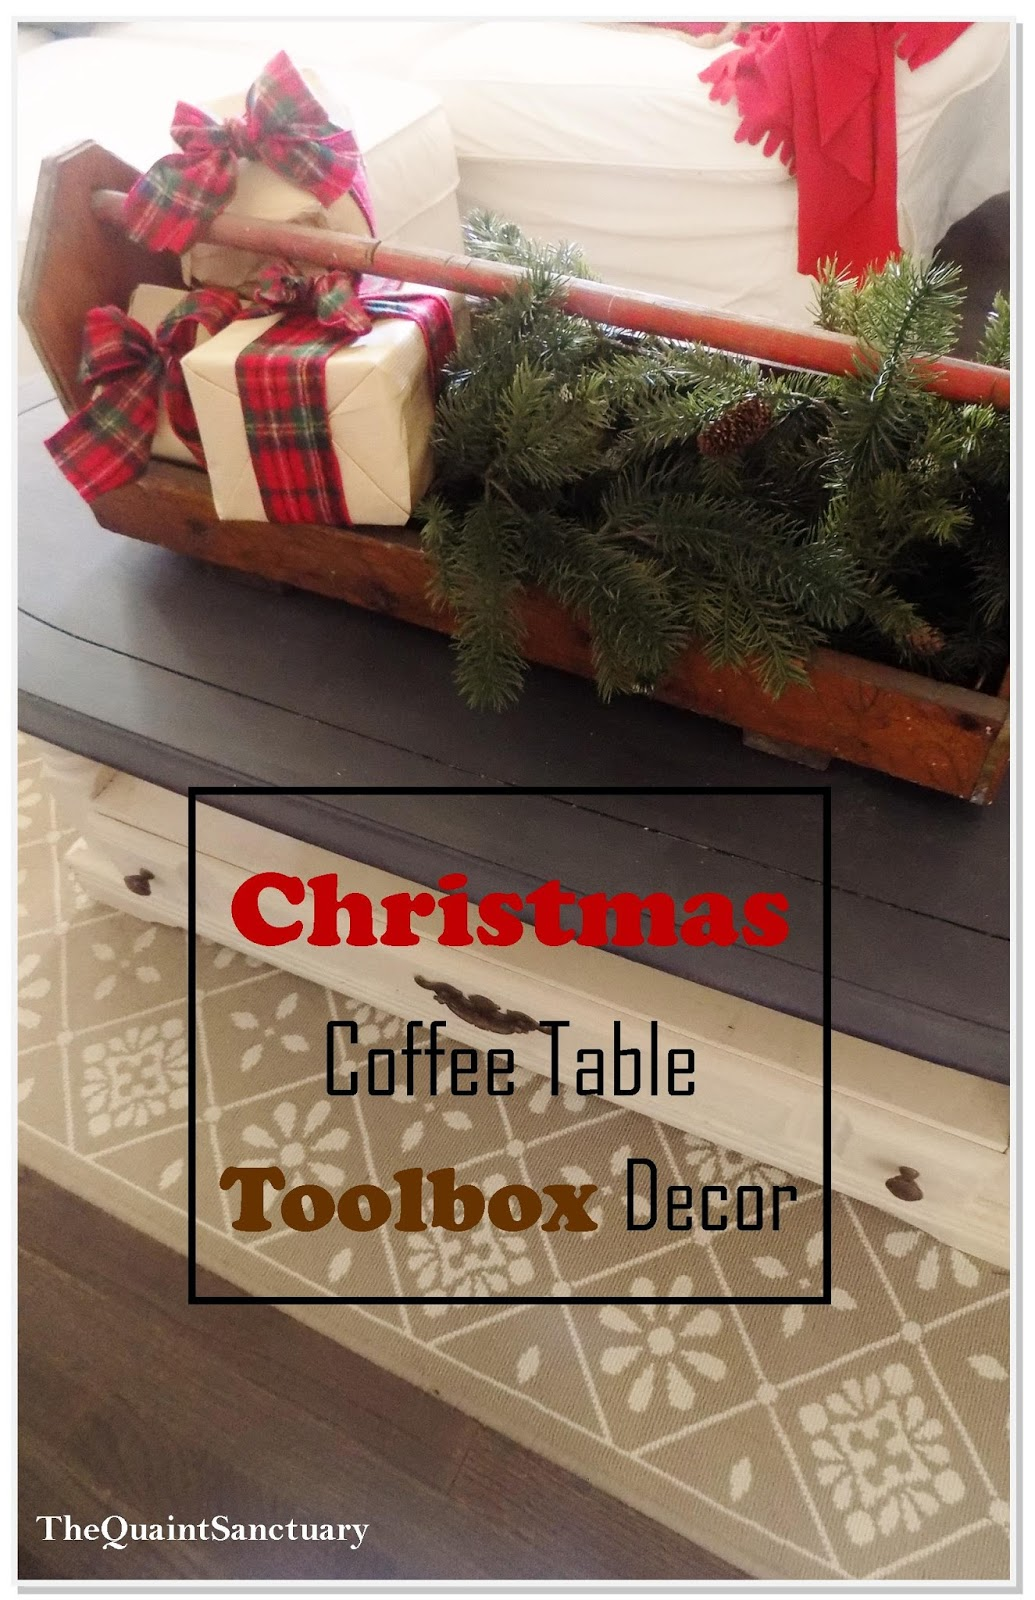 The Quaint Sanctuary: { Vintage Toolbox Coffee Table Decor !}